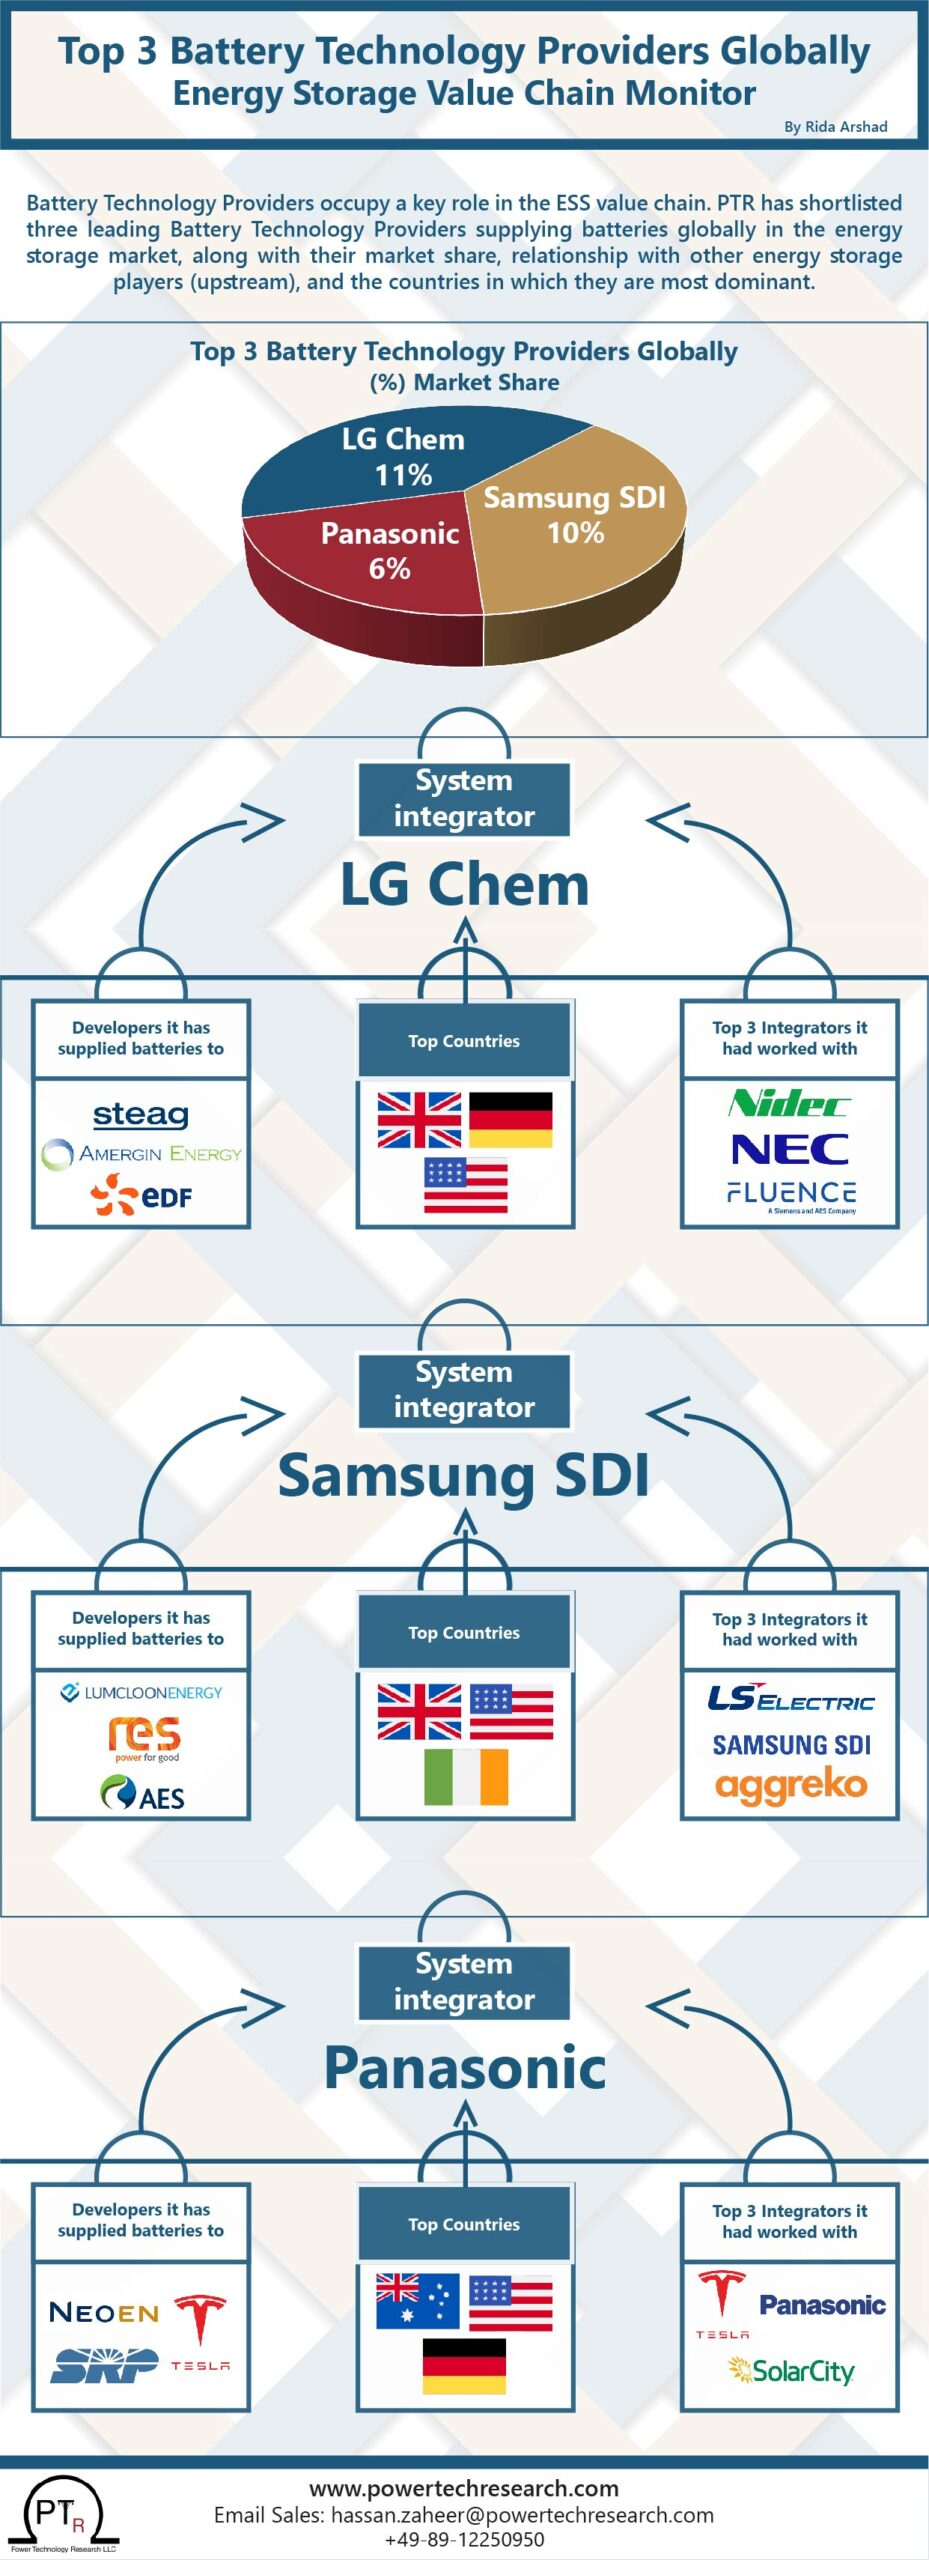 Top 3 Battery Technology Providers Globally – Energy Storage Value Chain Monitor